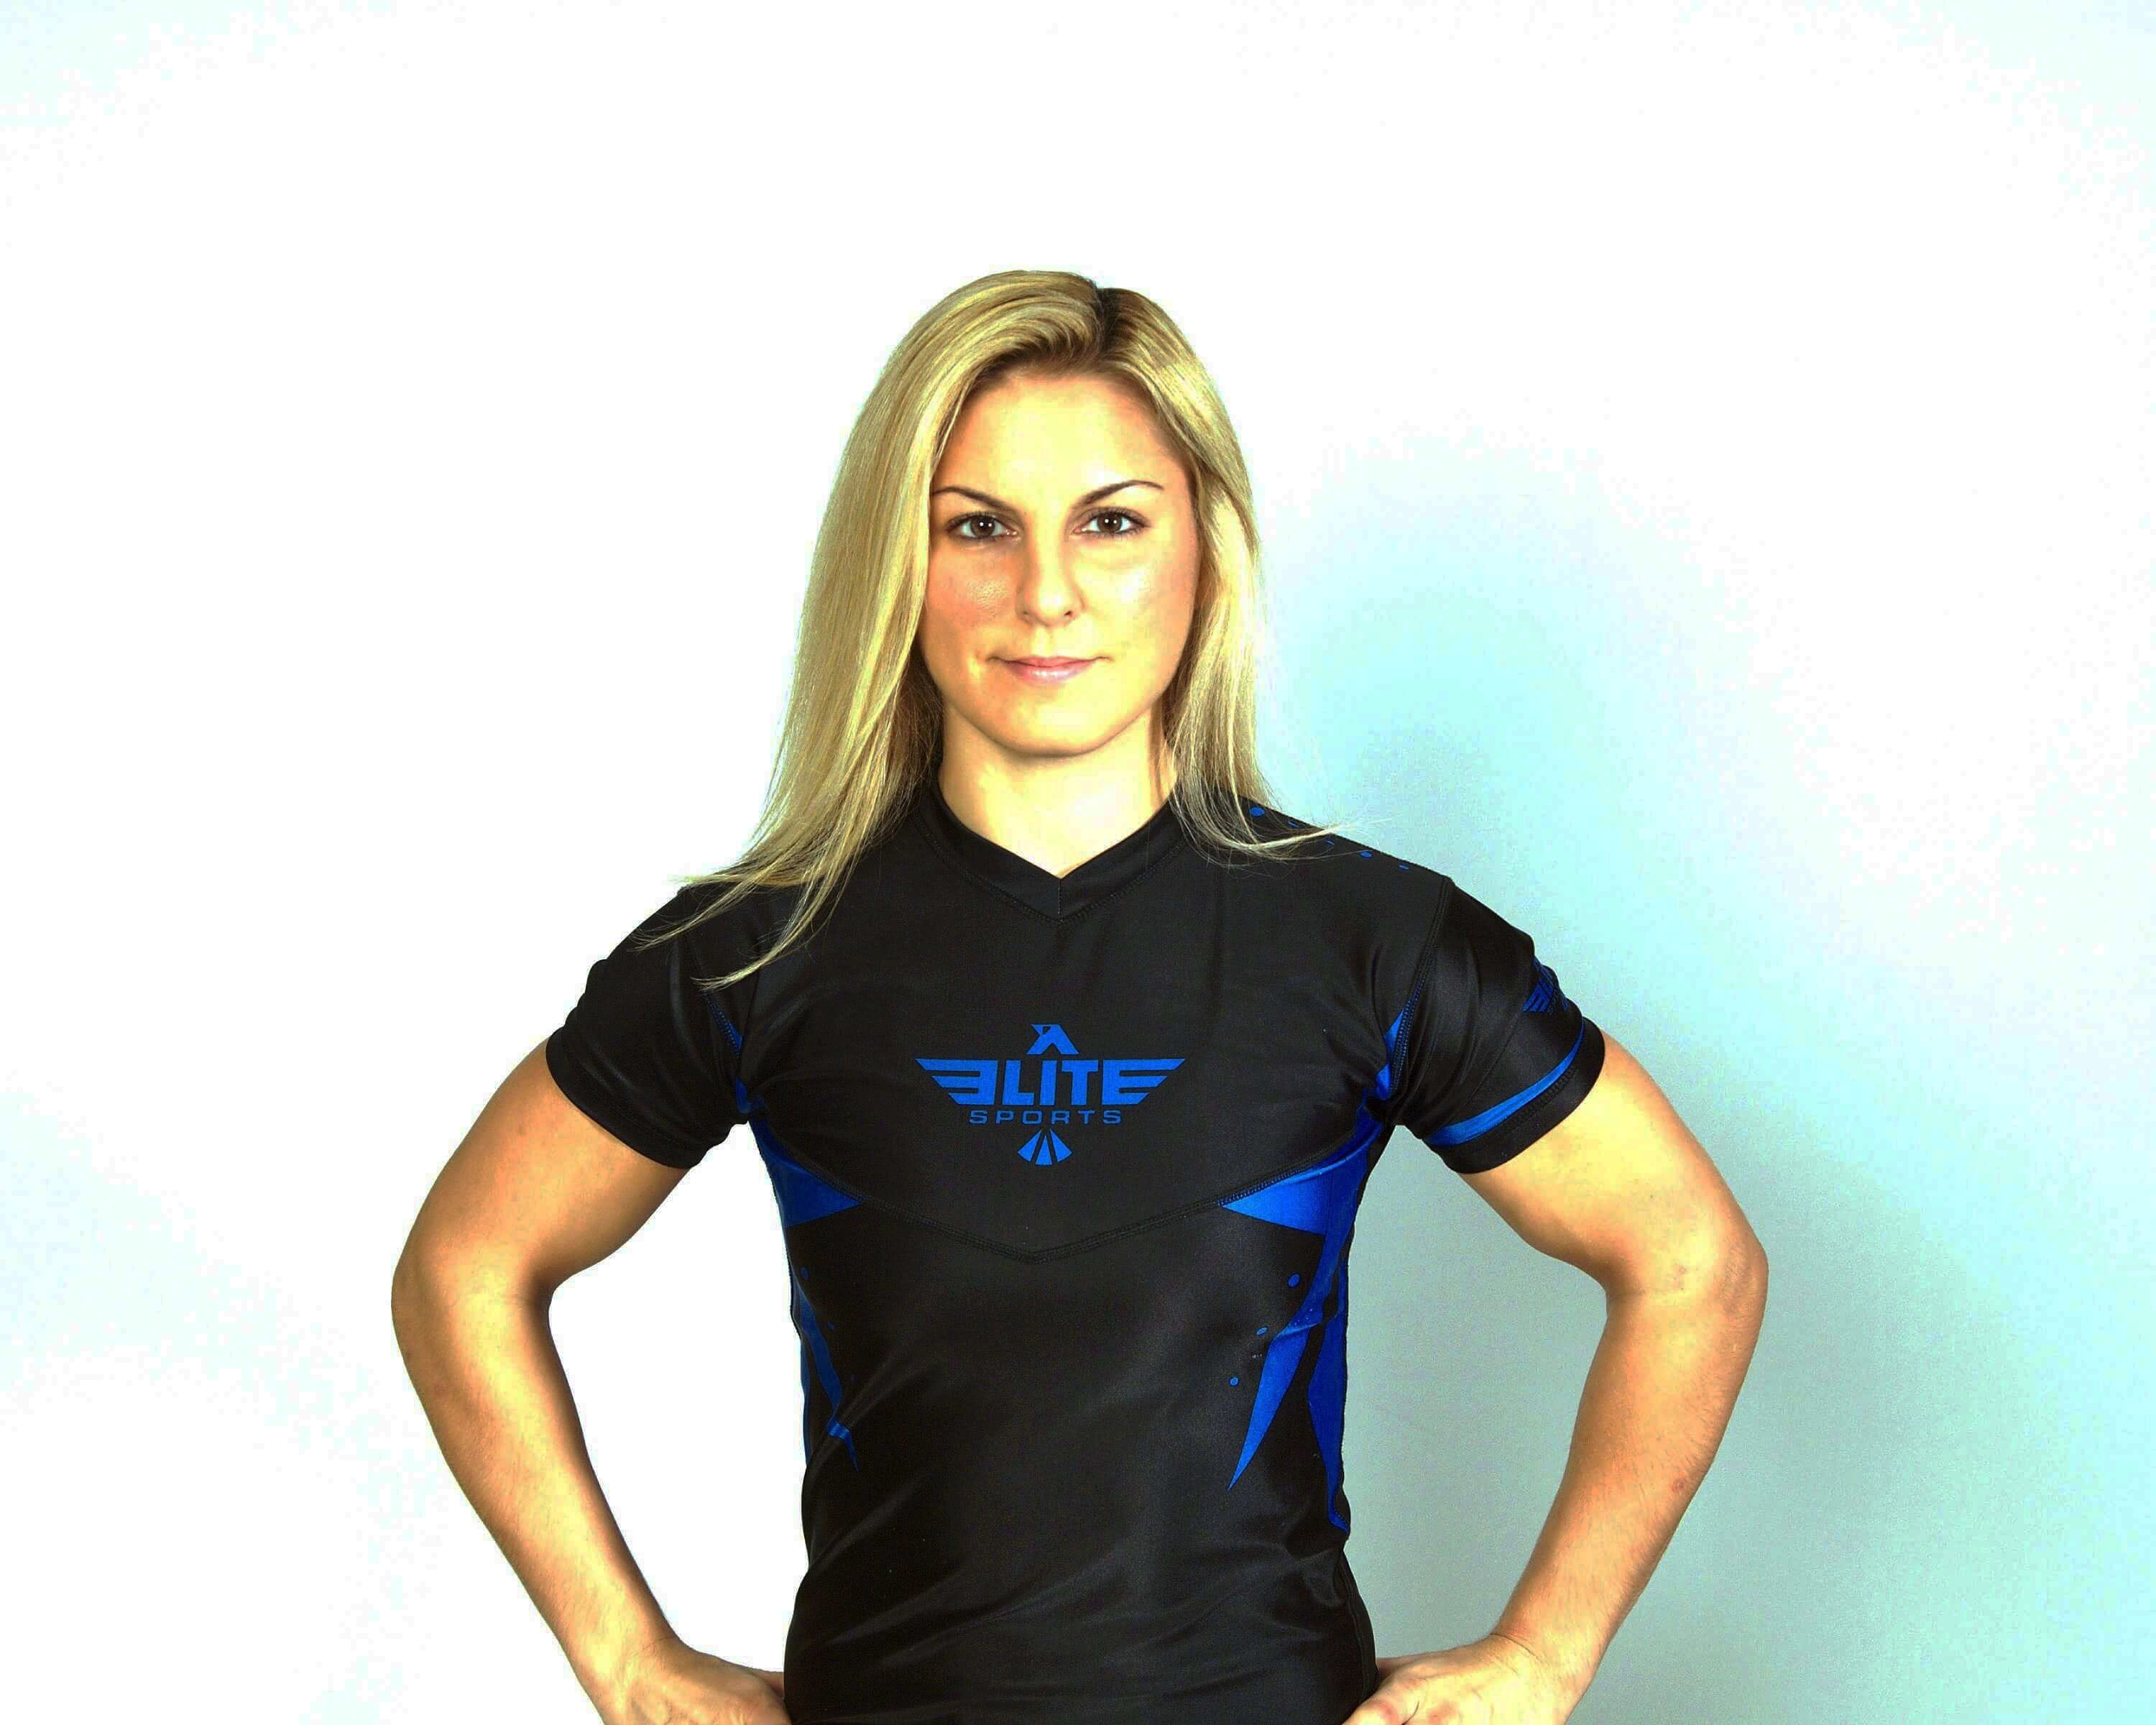 Elite sports Team Elite MMA Trisha Cicero image12.jpeg